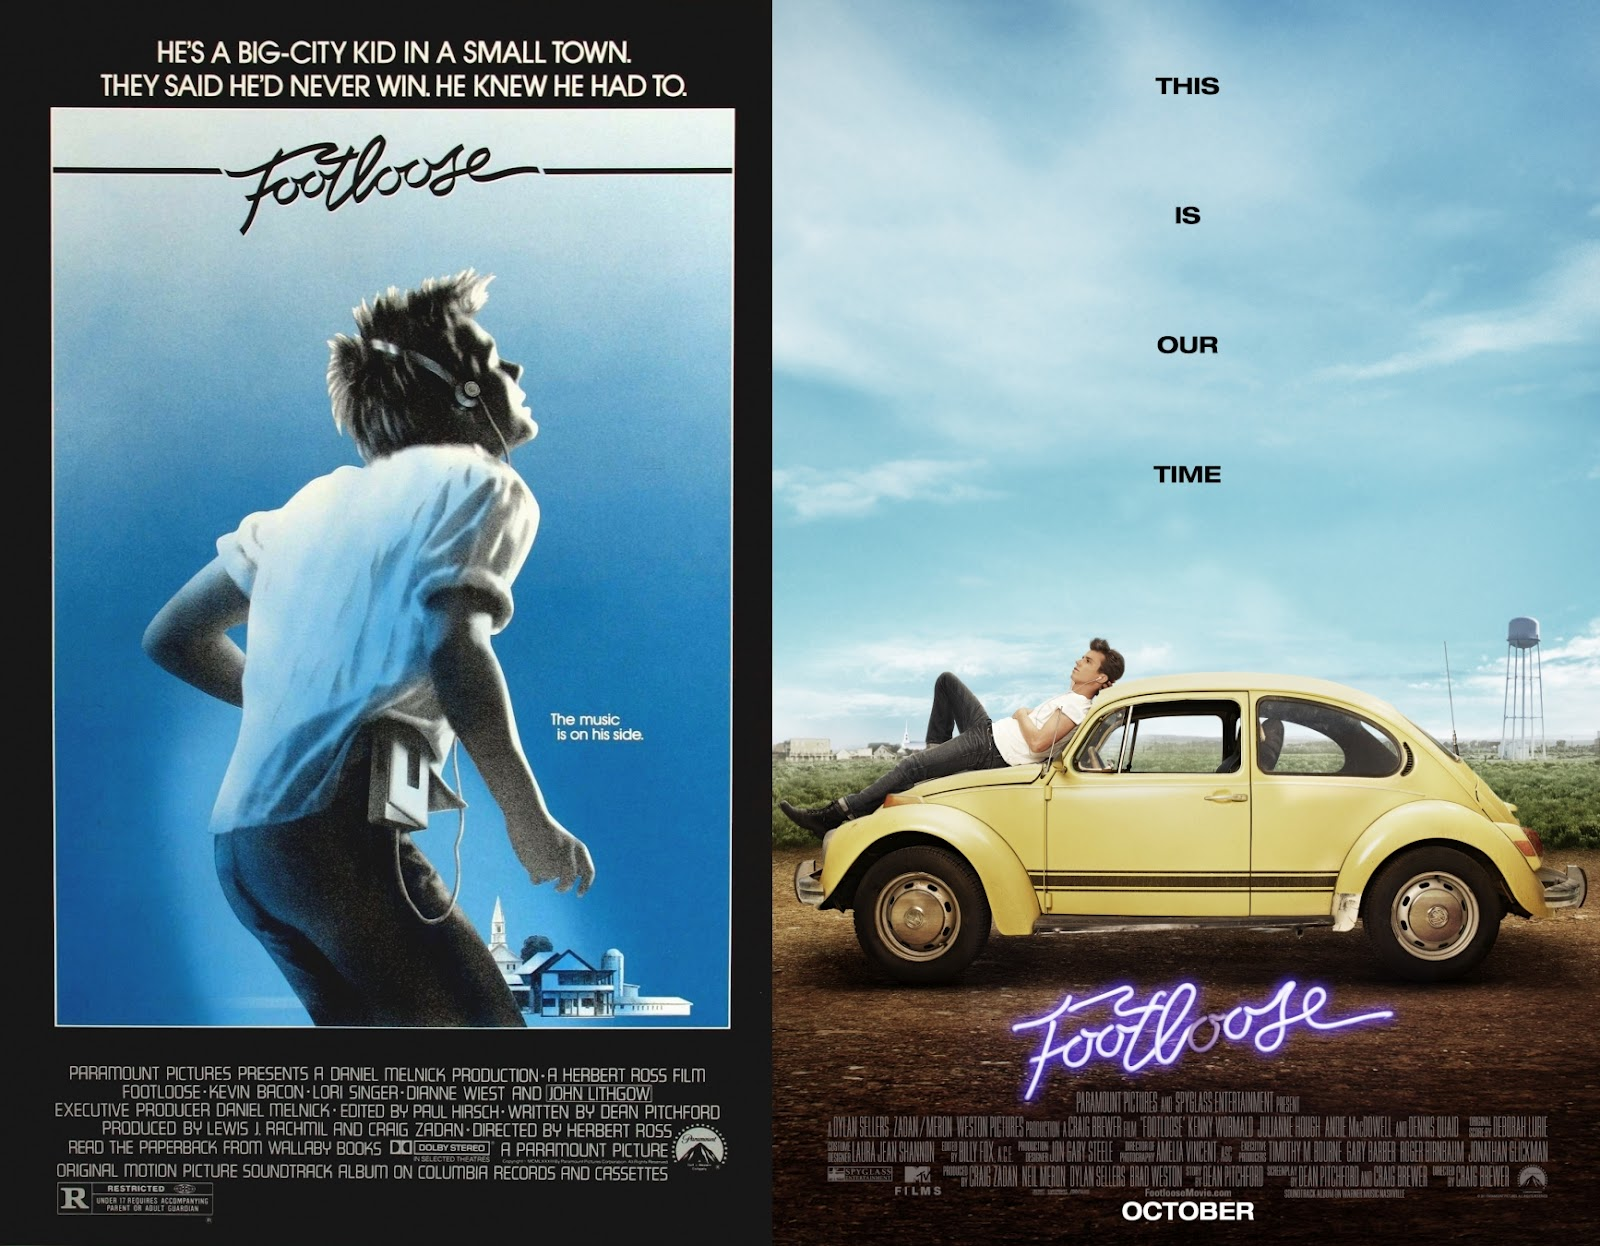 Footloose Movie Poster  1984  footloose  2011 Footloose Movie Poster 1984